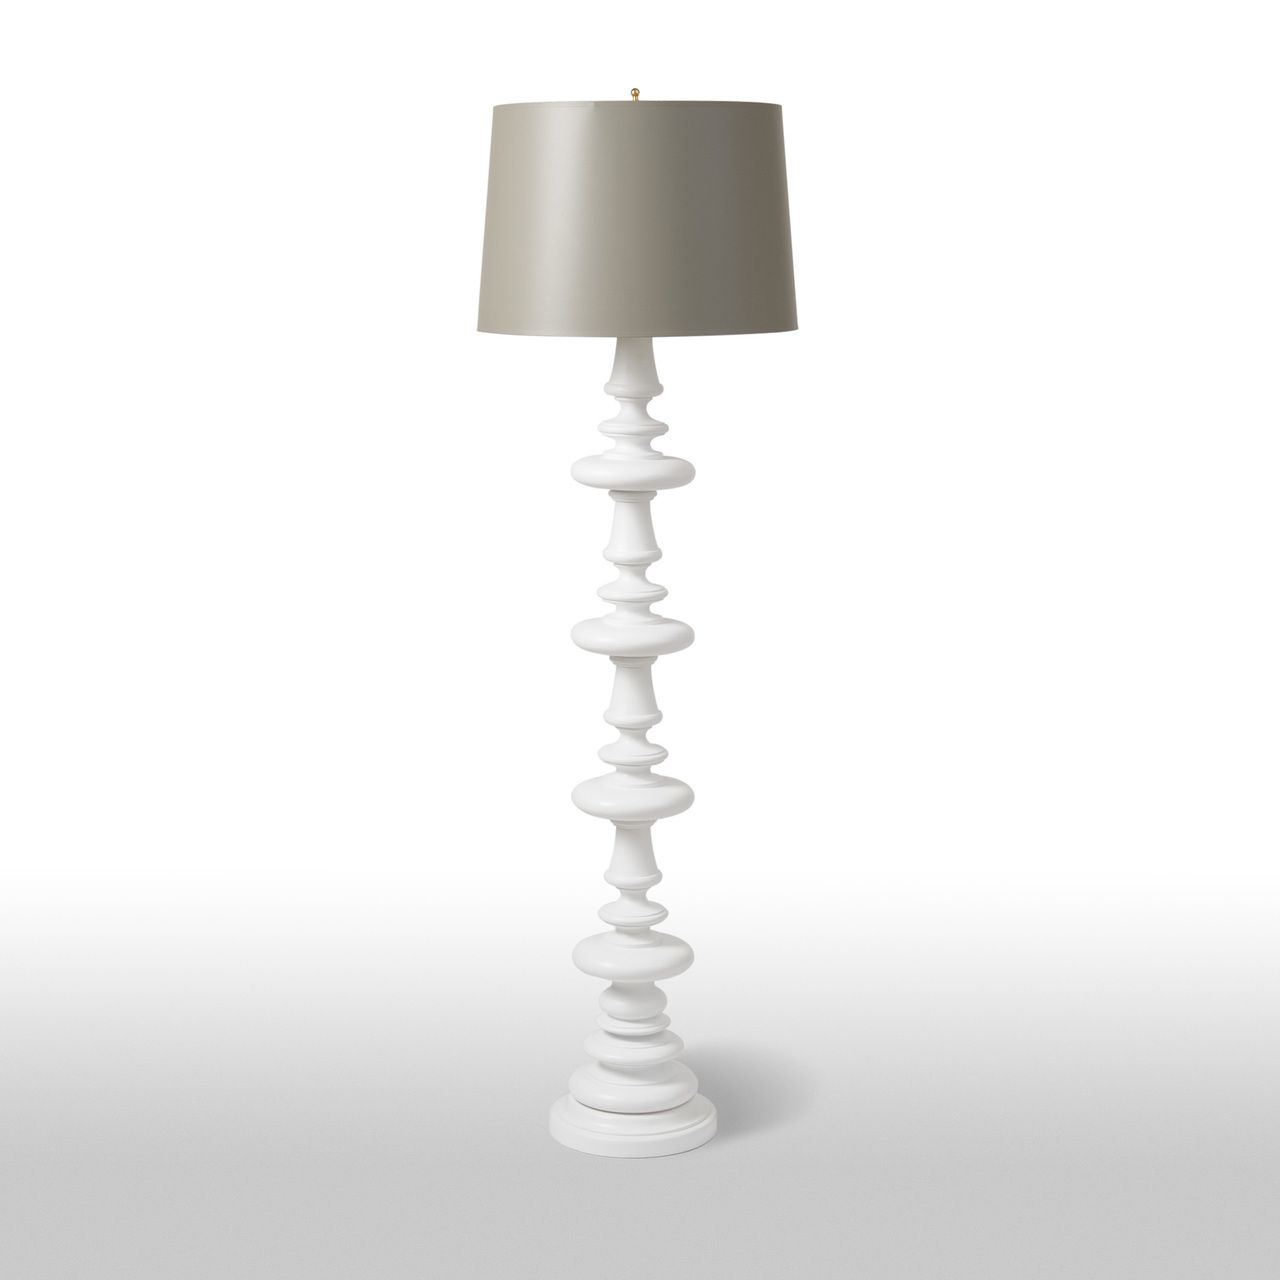 Turned Floor Lamp Tall White Barbara Cosgrove Lamps Lumber Lane